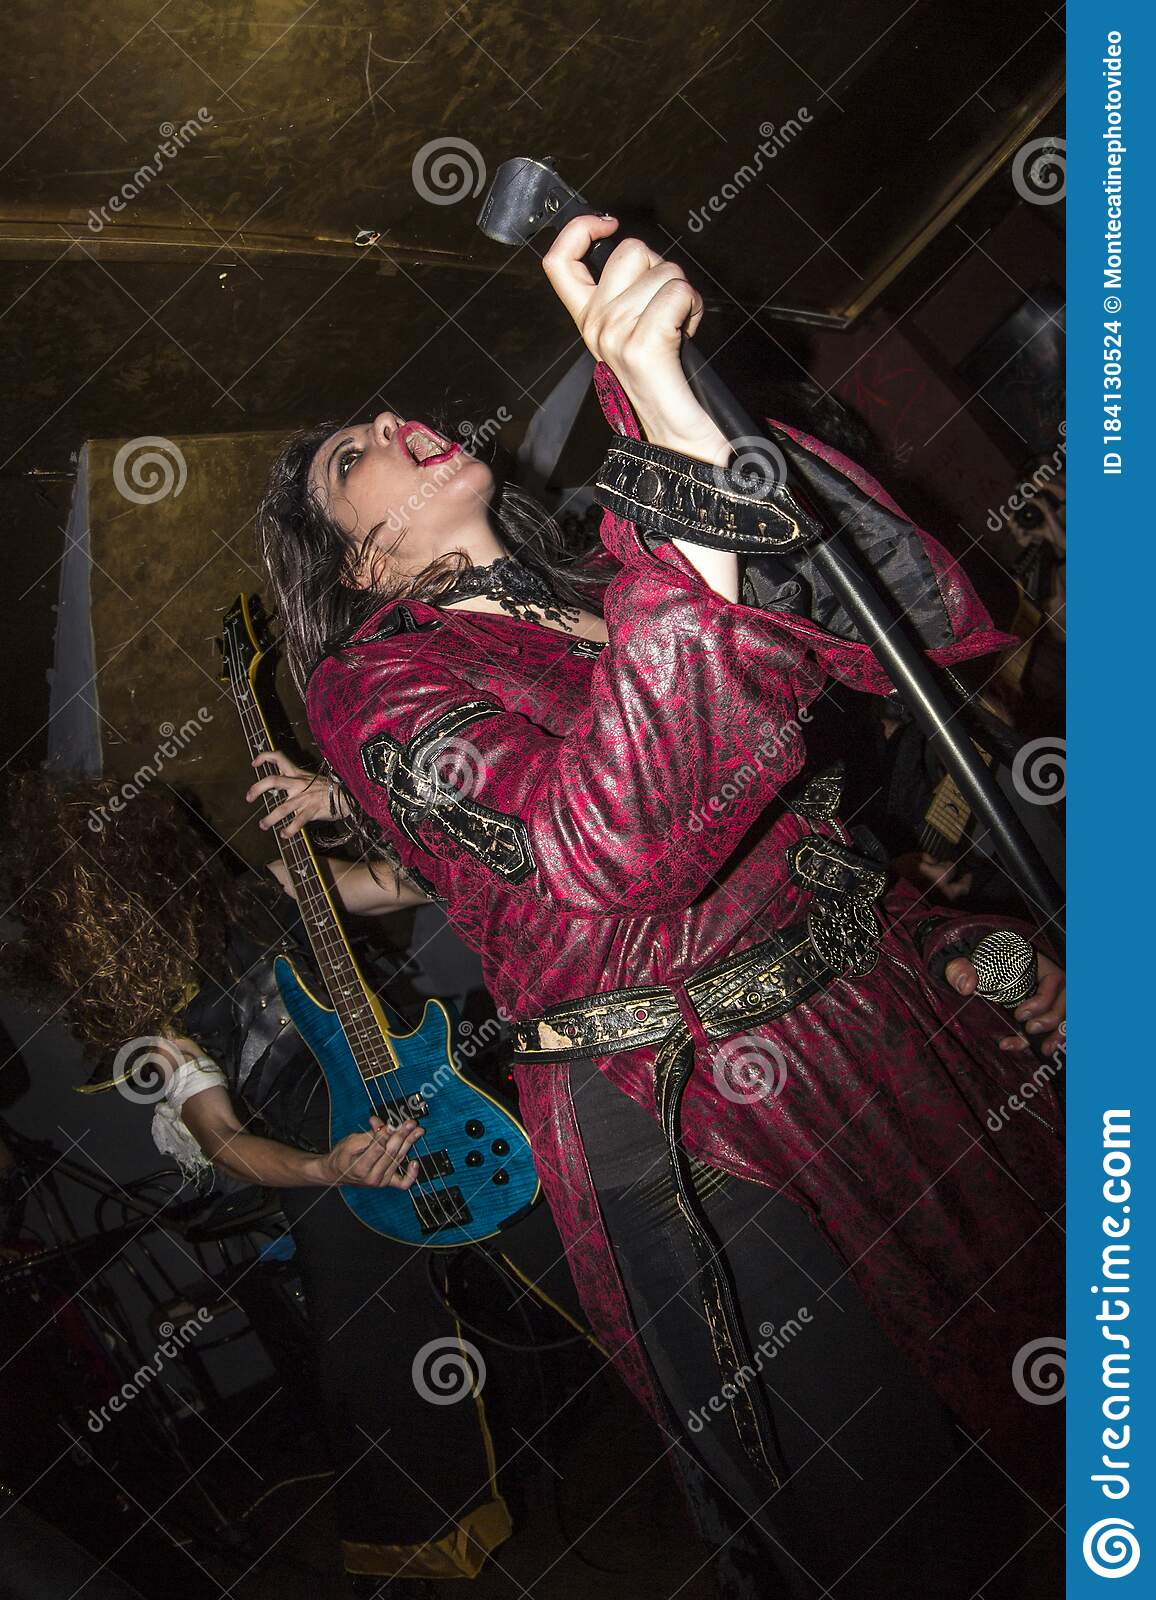 Female Heavy Metal Vocalist Dressed In Red Singing Editorial Stock Image Image Of Malaga Banging 184130524